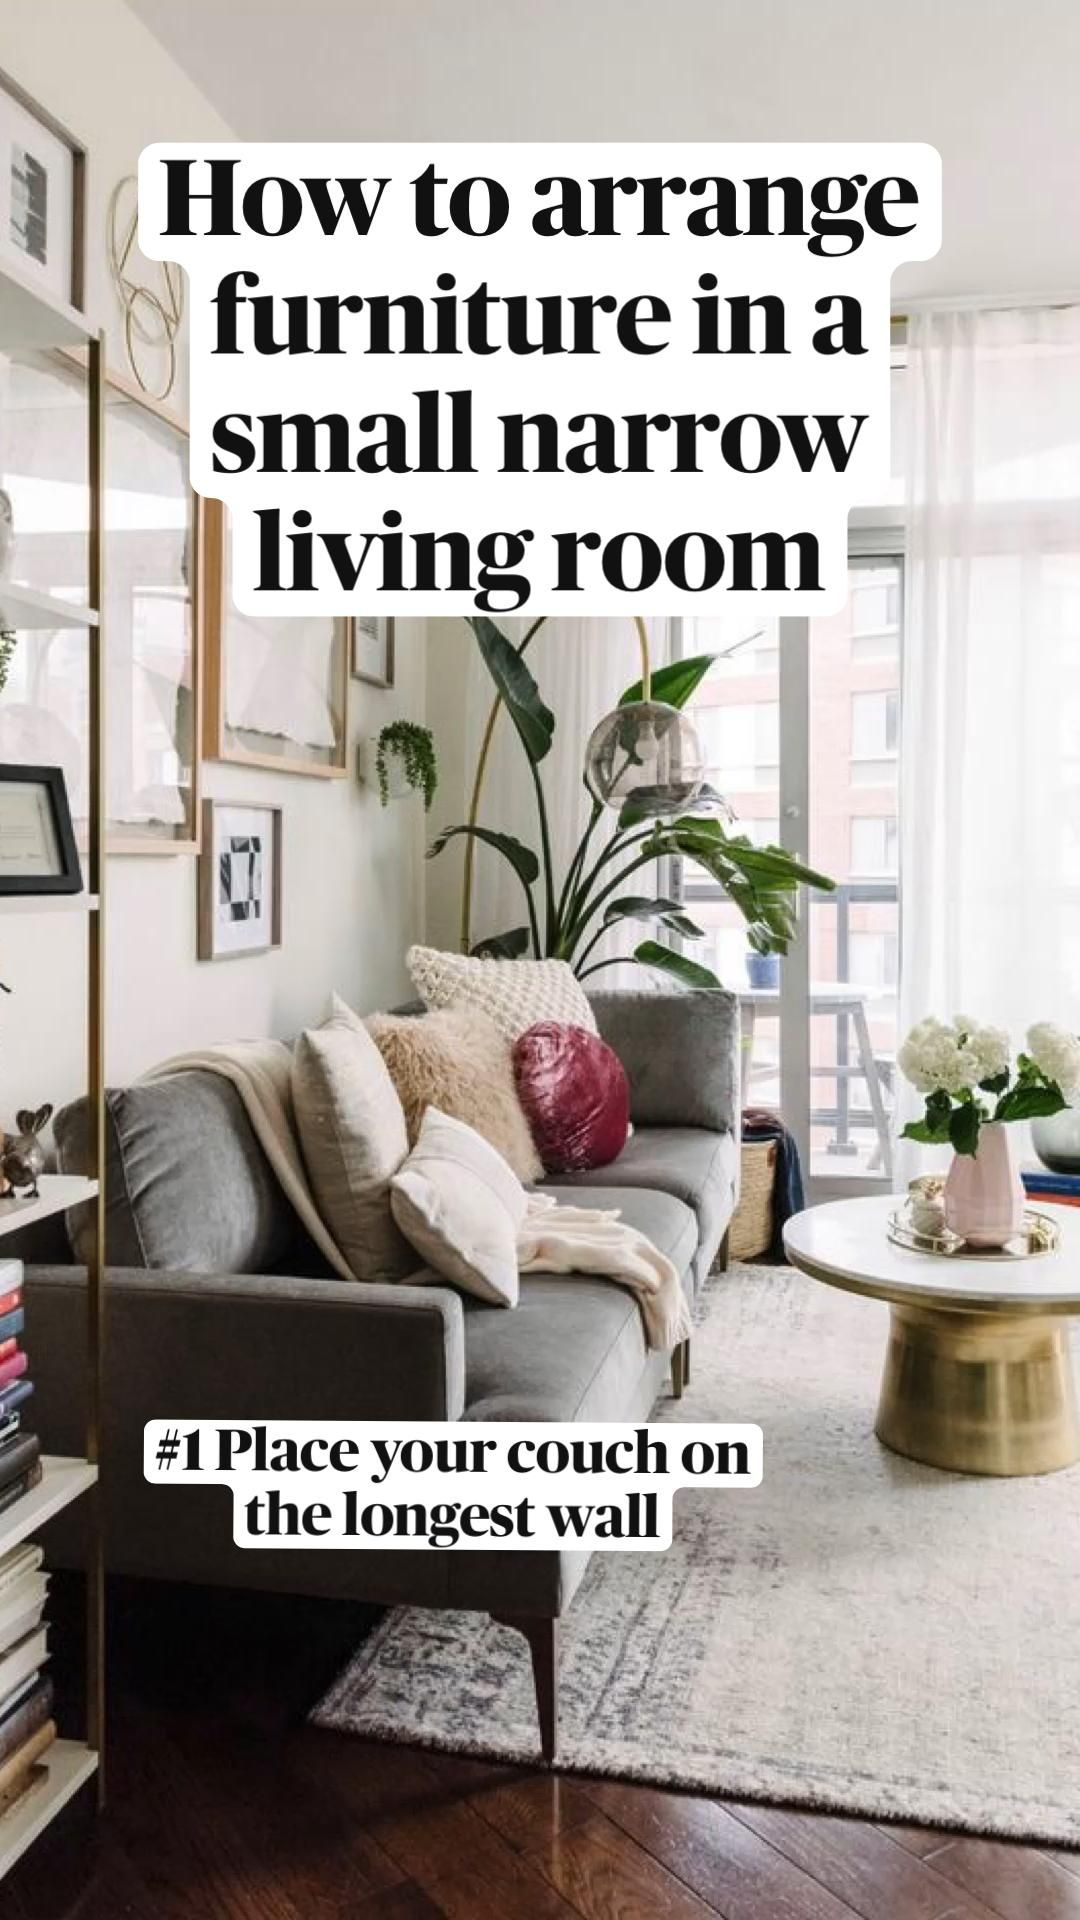 How To Arrange Furniture In A Small Narrow Living Room An Immersive Guide By Malena Permentier Conversations That Matter